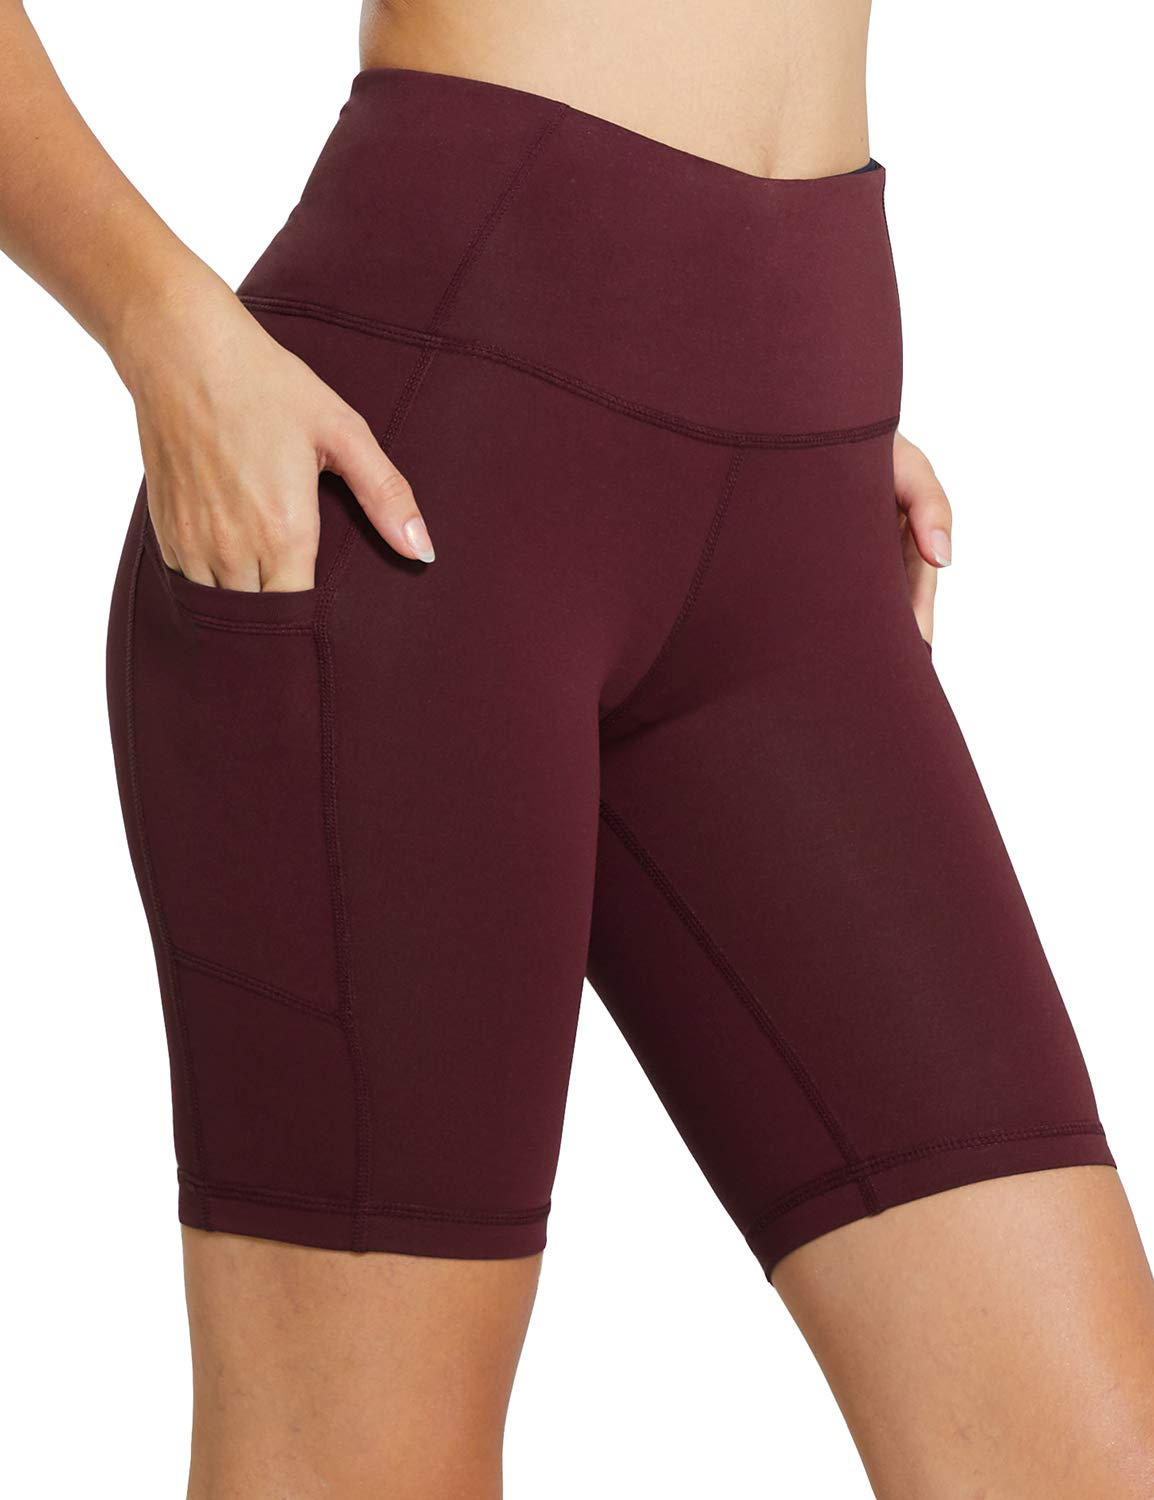 BALEAF Women's 8'' High Waist Tummy Control Workout Yoga Shorts Side Pockets Ruby Wine Size XL by BALEAF